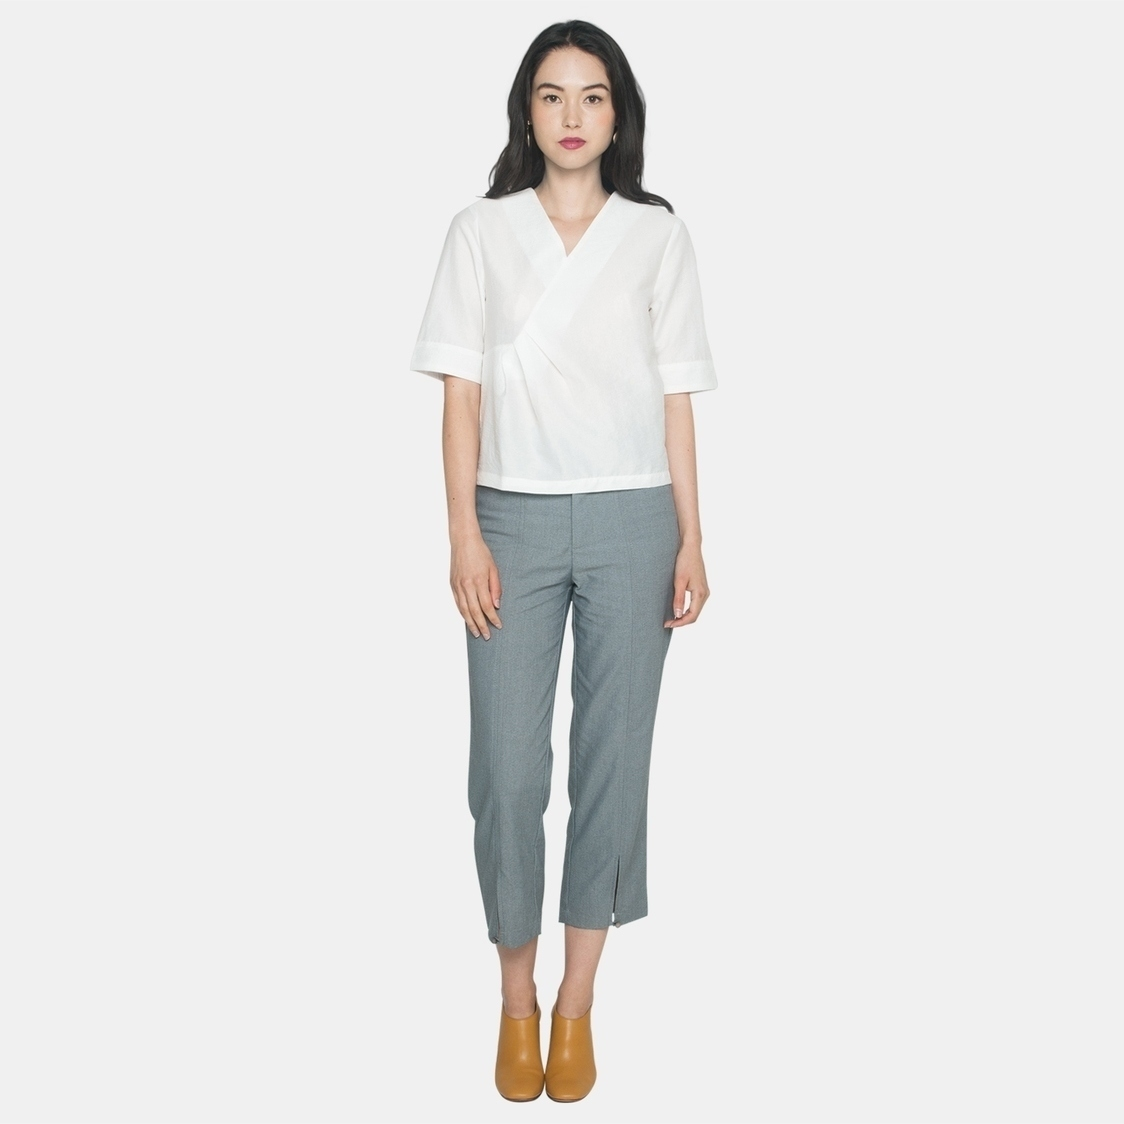 Ellysage Waist Tuck Textured Shirt in White